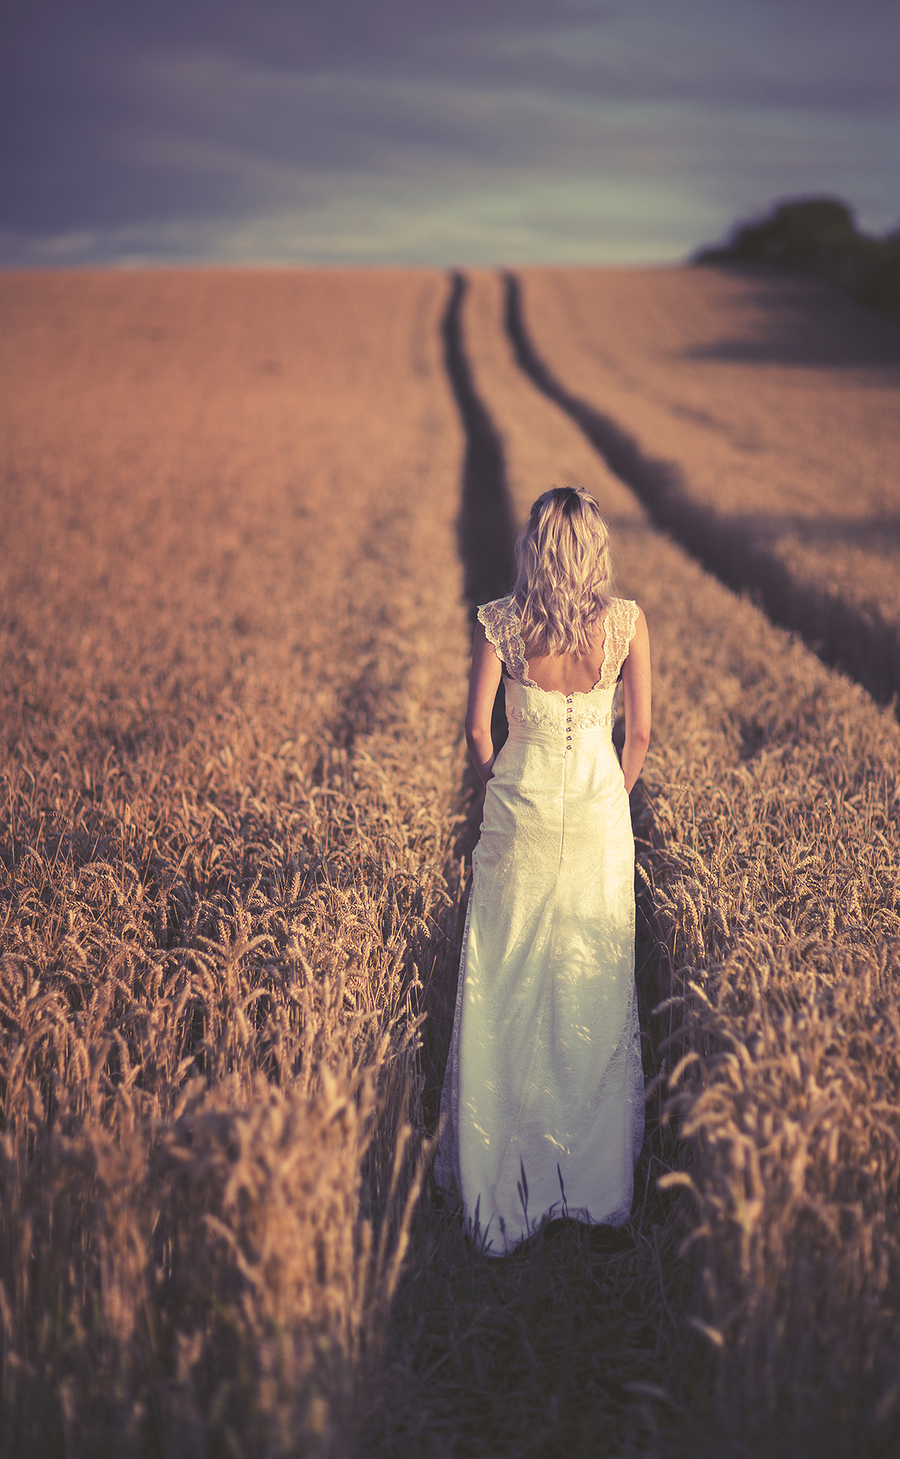 Miranda in the corn / Photography by jakabi / Uploaded 21st August 2015 @ 01:05 PM